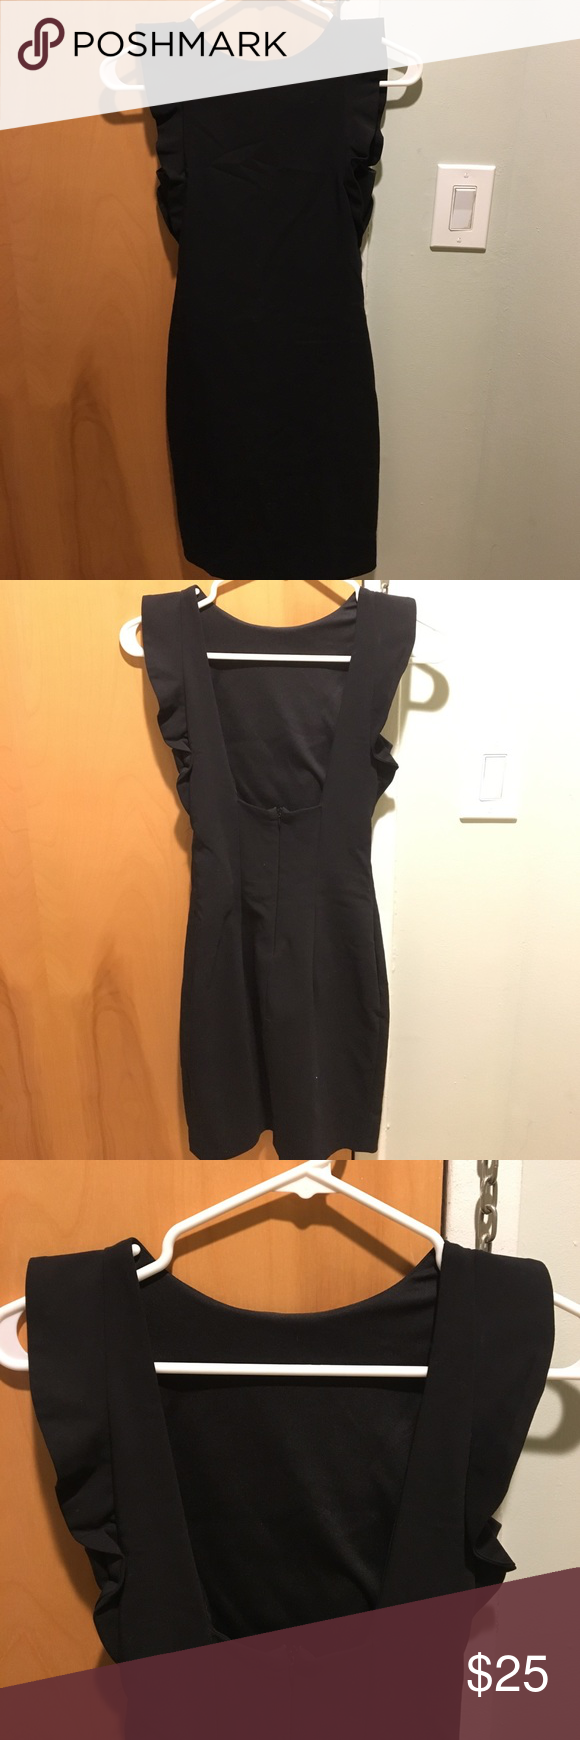 LBD from Zara. Size XS Super sexy LBD from Zara. Ruffled shoulder detail. Square cut out back. Very flattering and form fitting. Doesn't fit anymore. Size XS Zara Dresses Mini